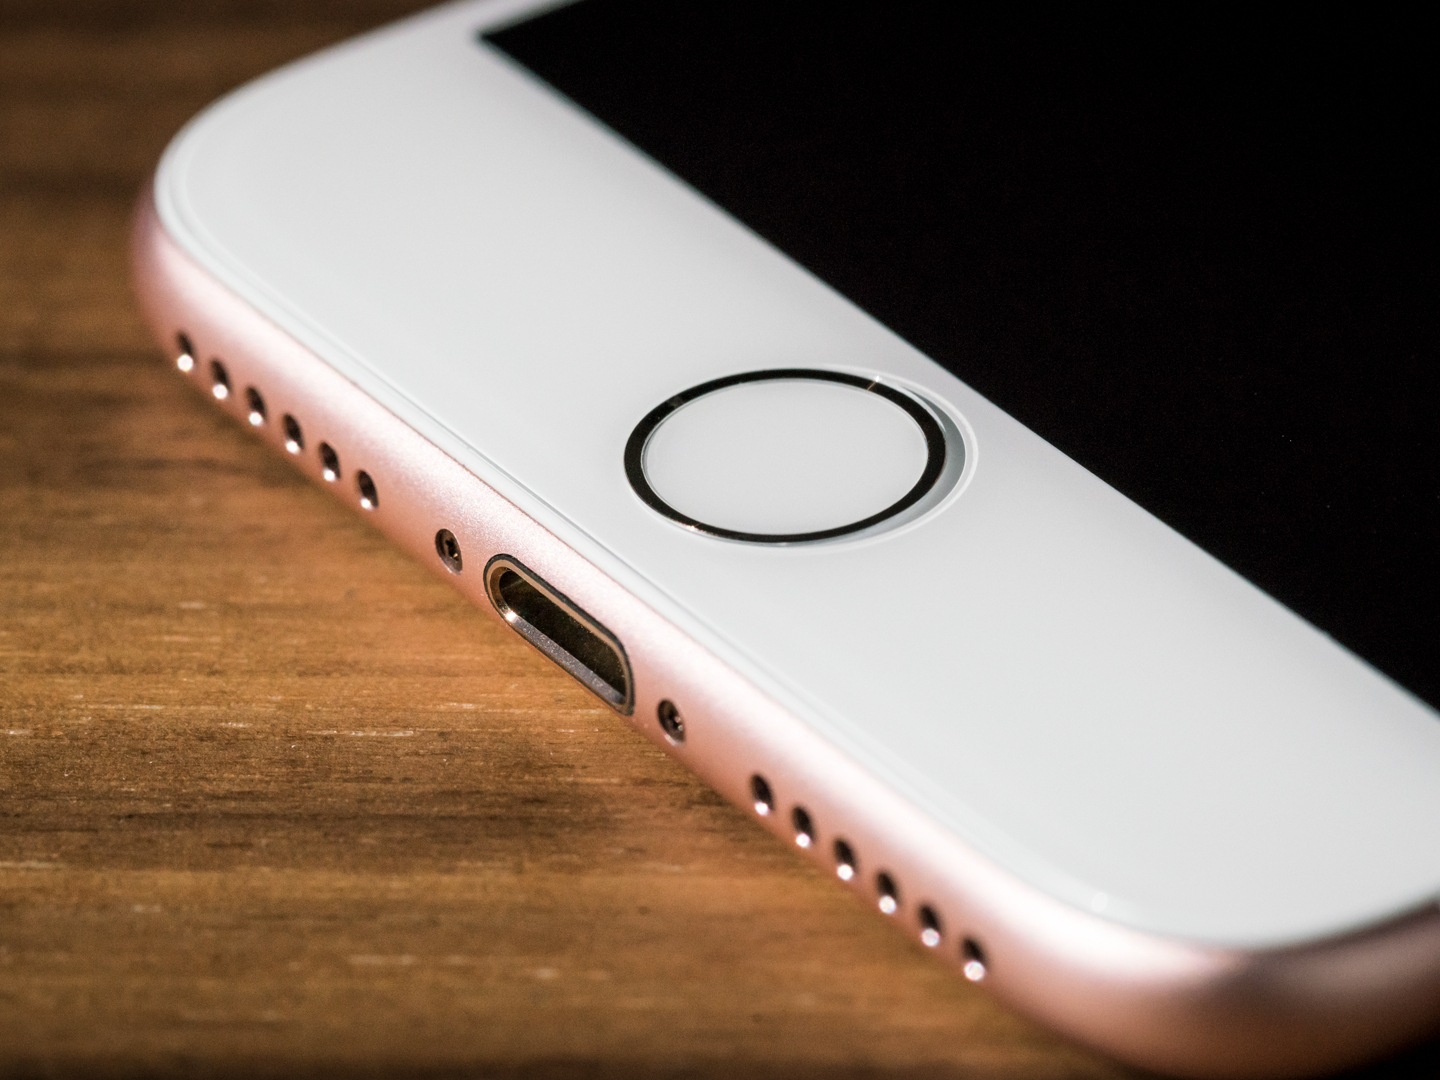 Iphone 7 Repair Ifixit Apple Gsm 128 Gb Rose Gold How To Replace The Touch Ic On Home Button